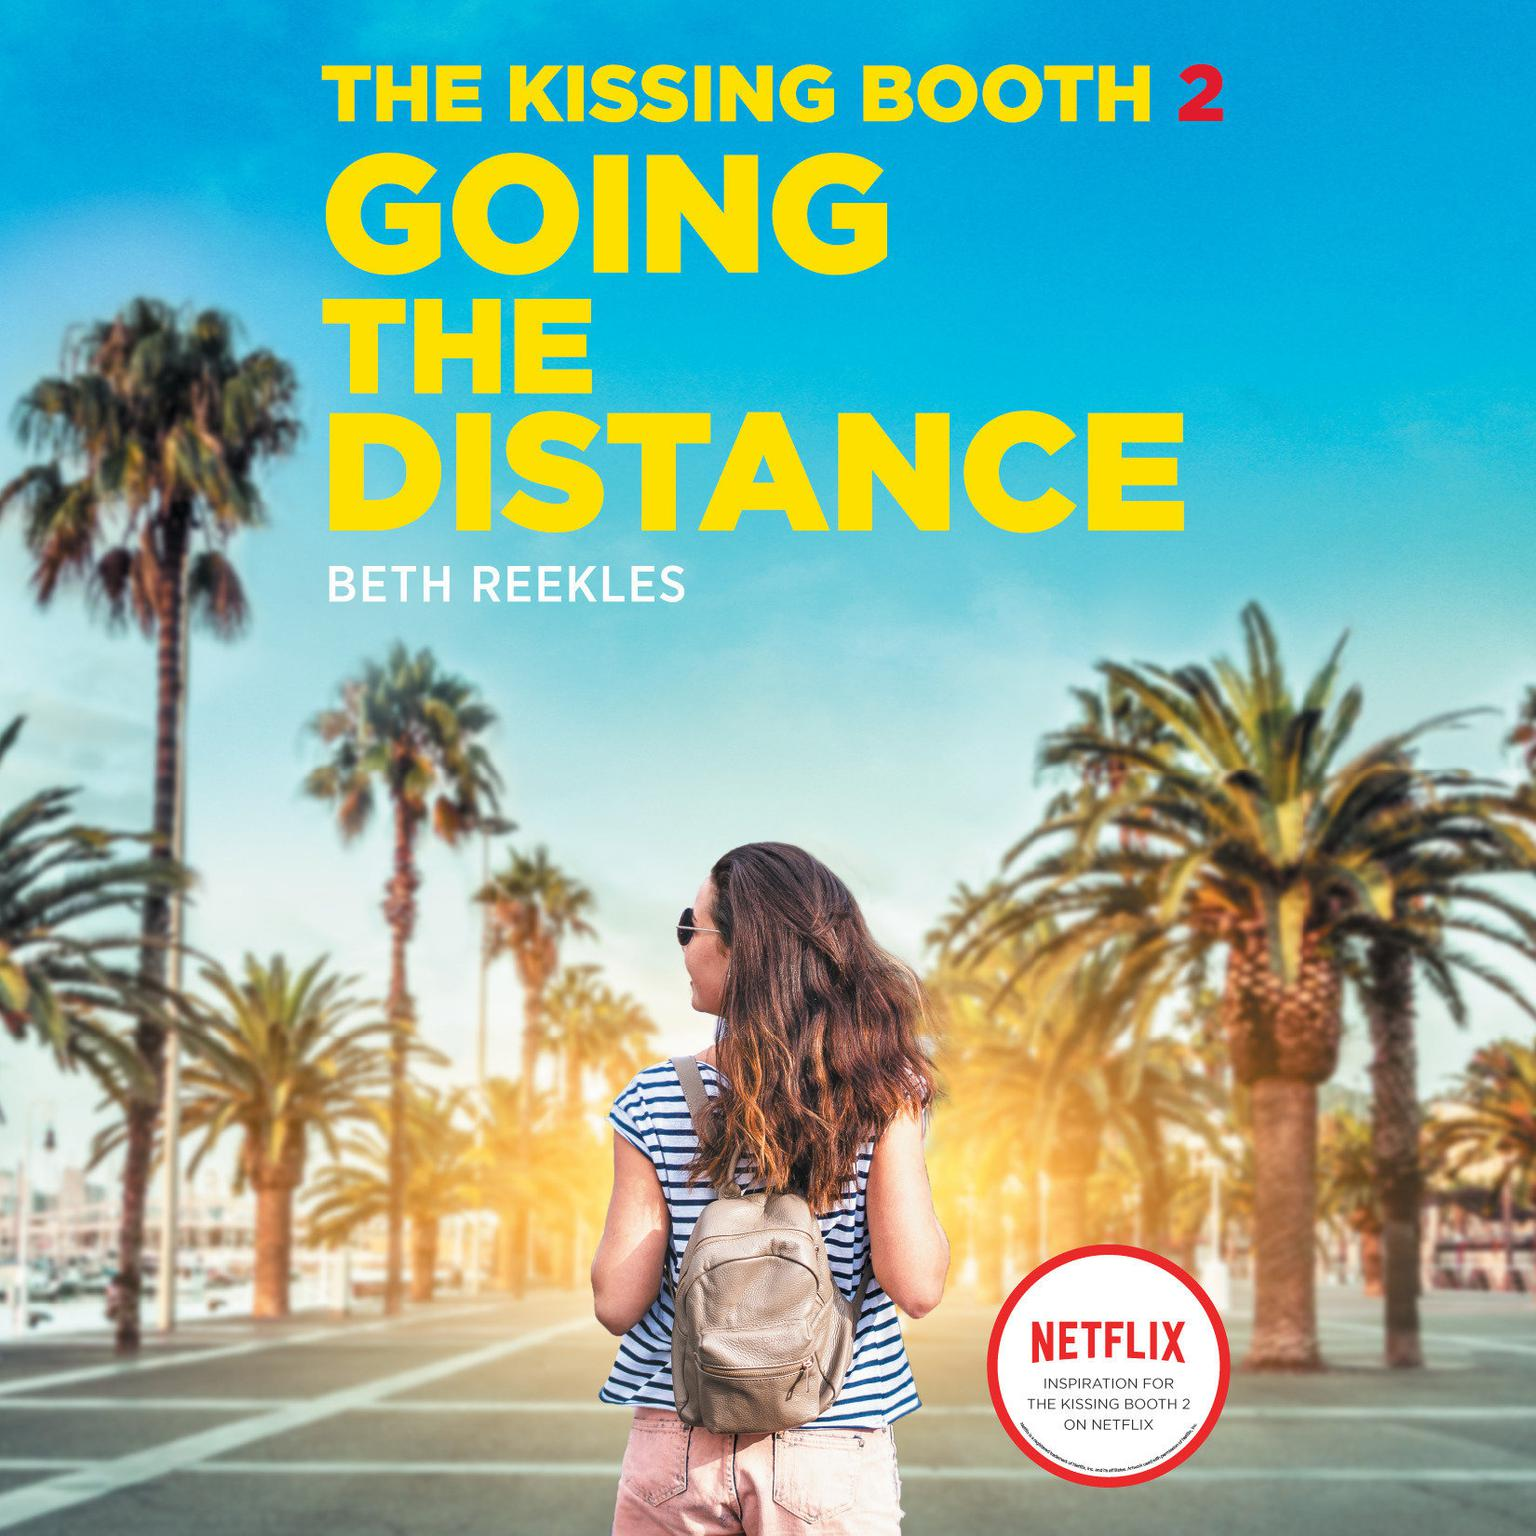 beth reekles the kissing booth 2 going the distance